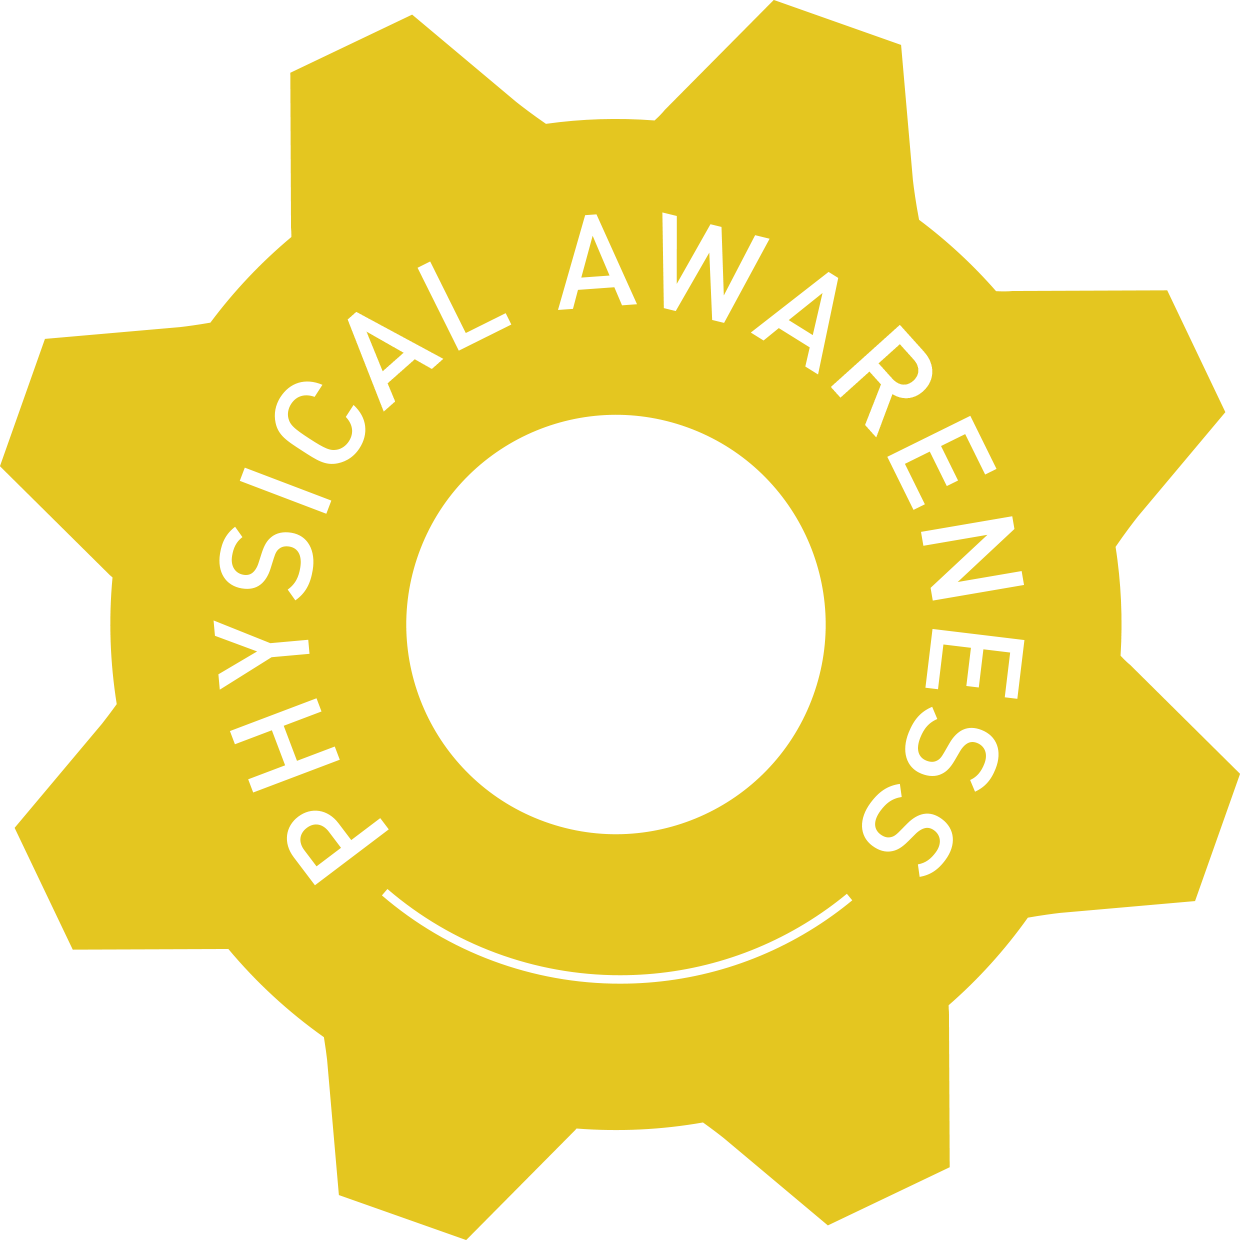 Copy of physical awareness cog